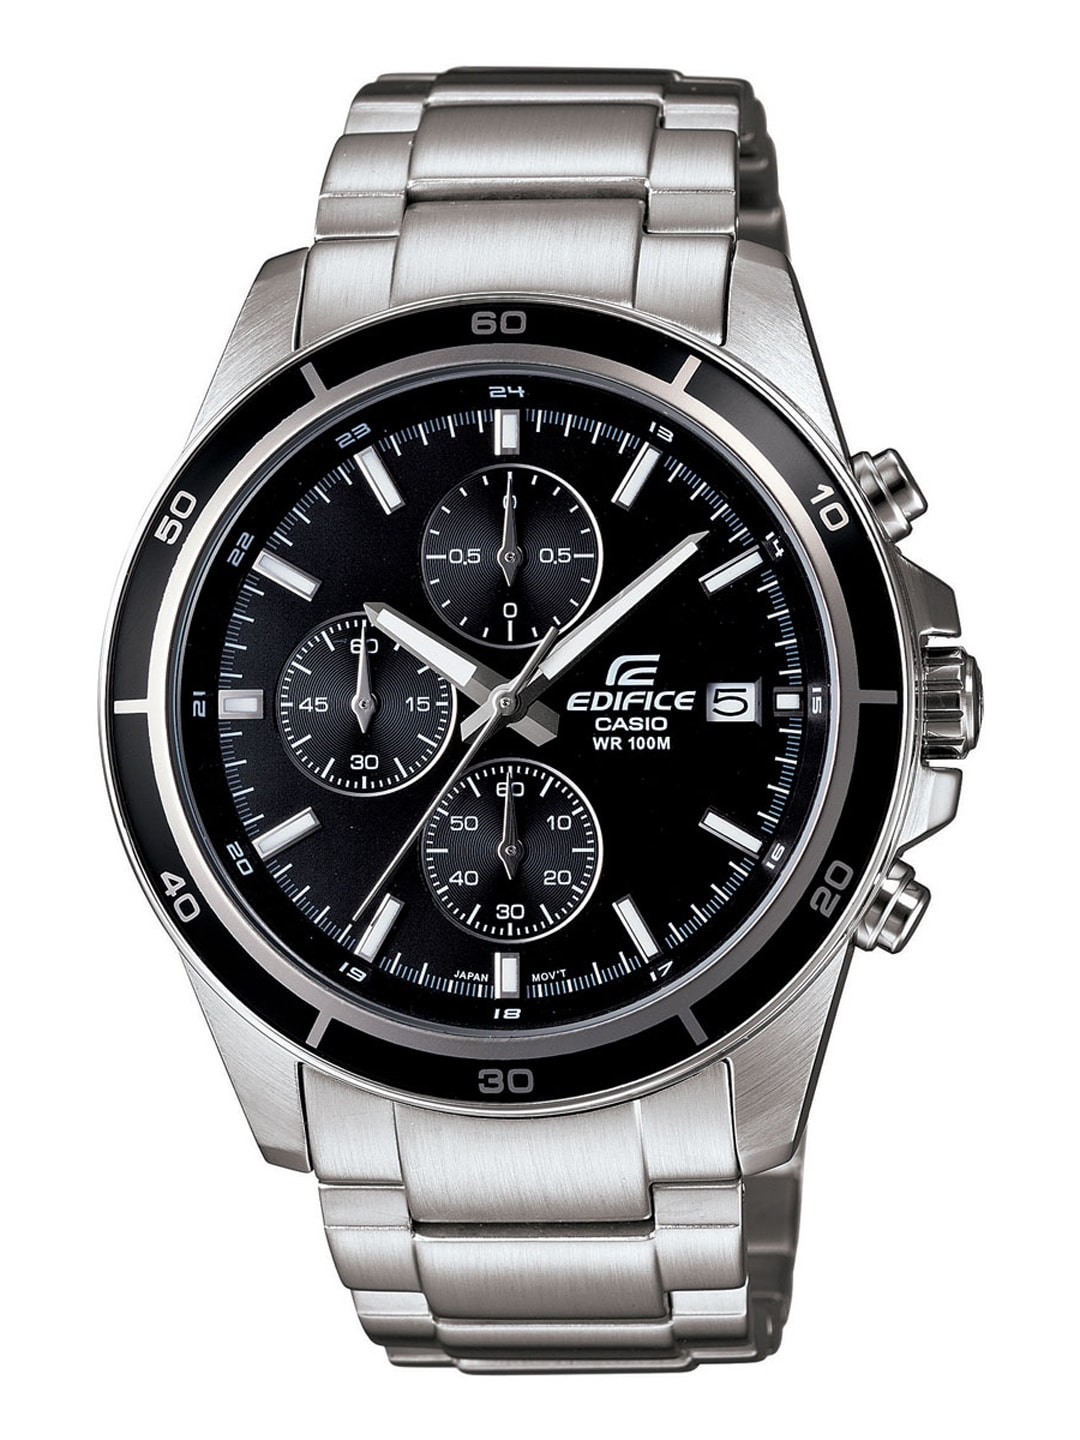 Casio EX093 Edifice Men's Watch image.